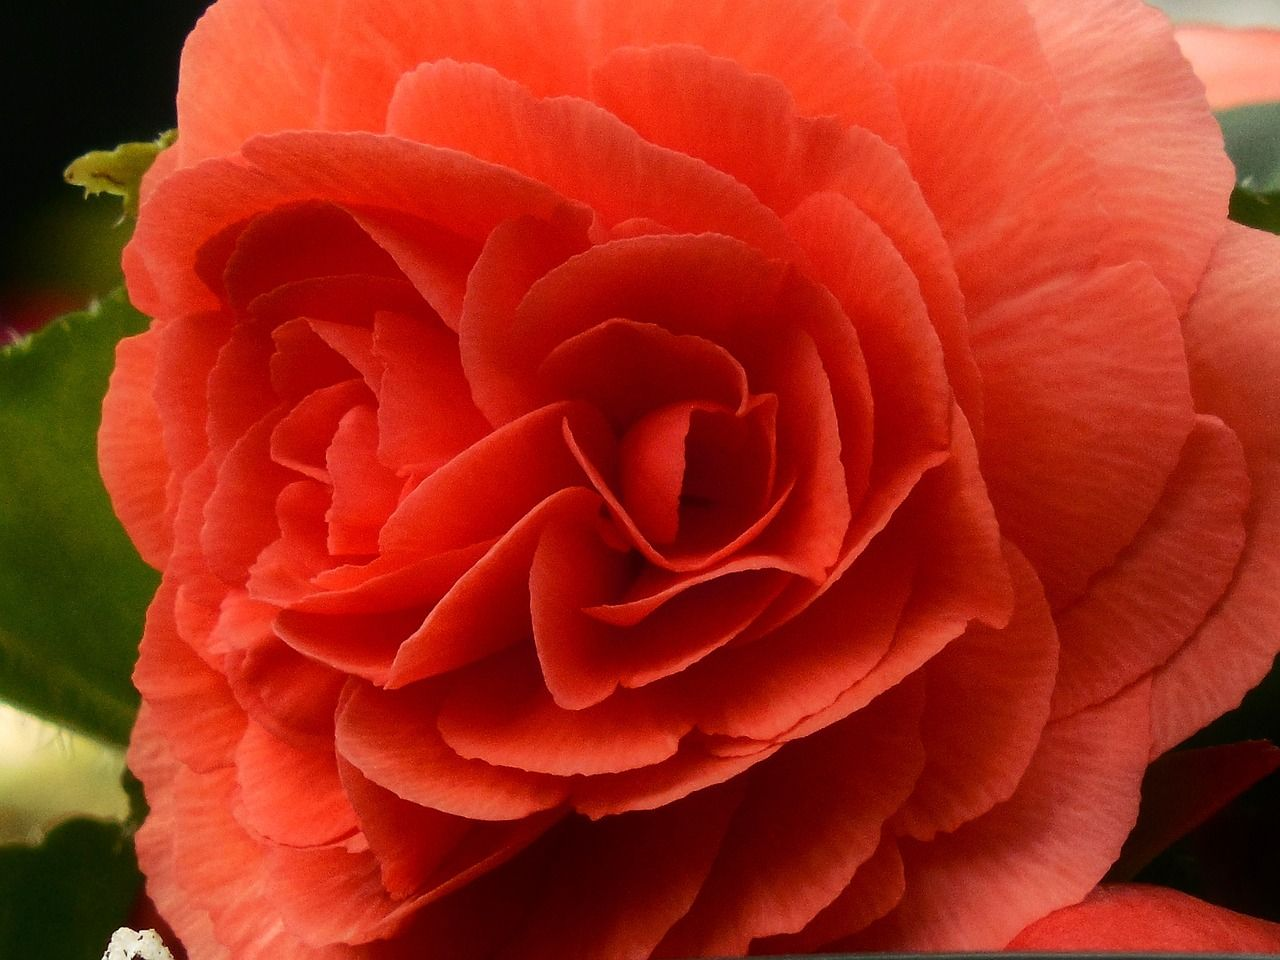 Begonia Meaning Beware or Friendship. Although very